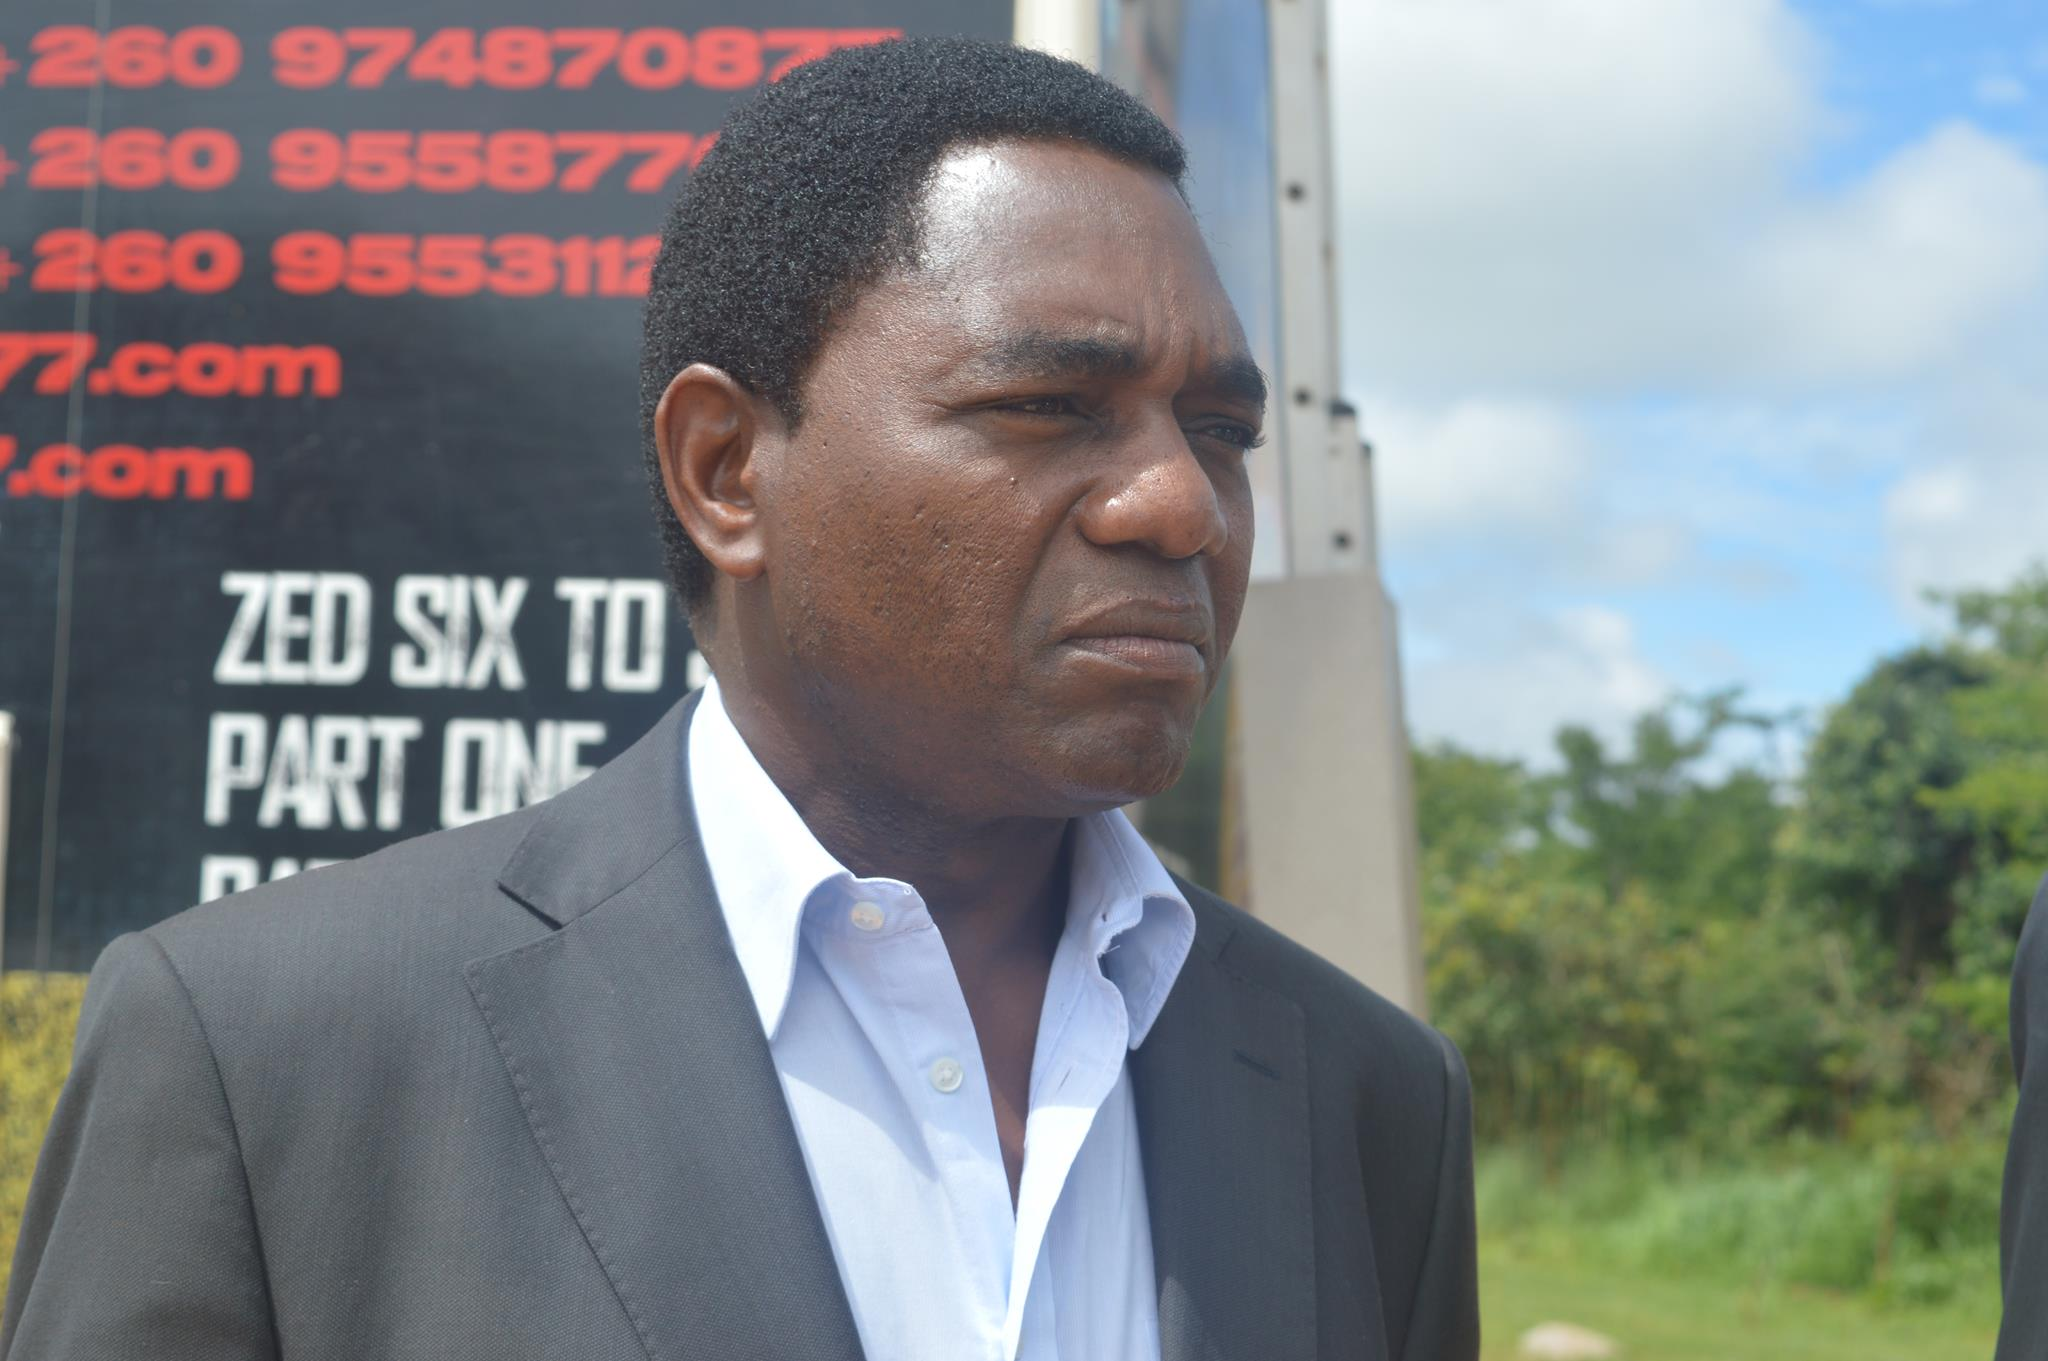 USA denounces brutal arrest of Hichilema